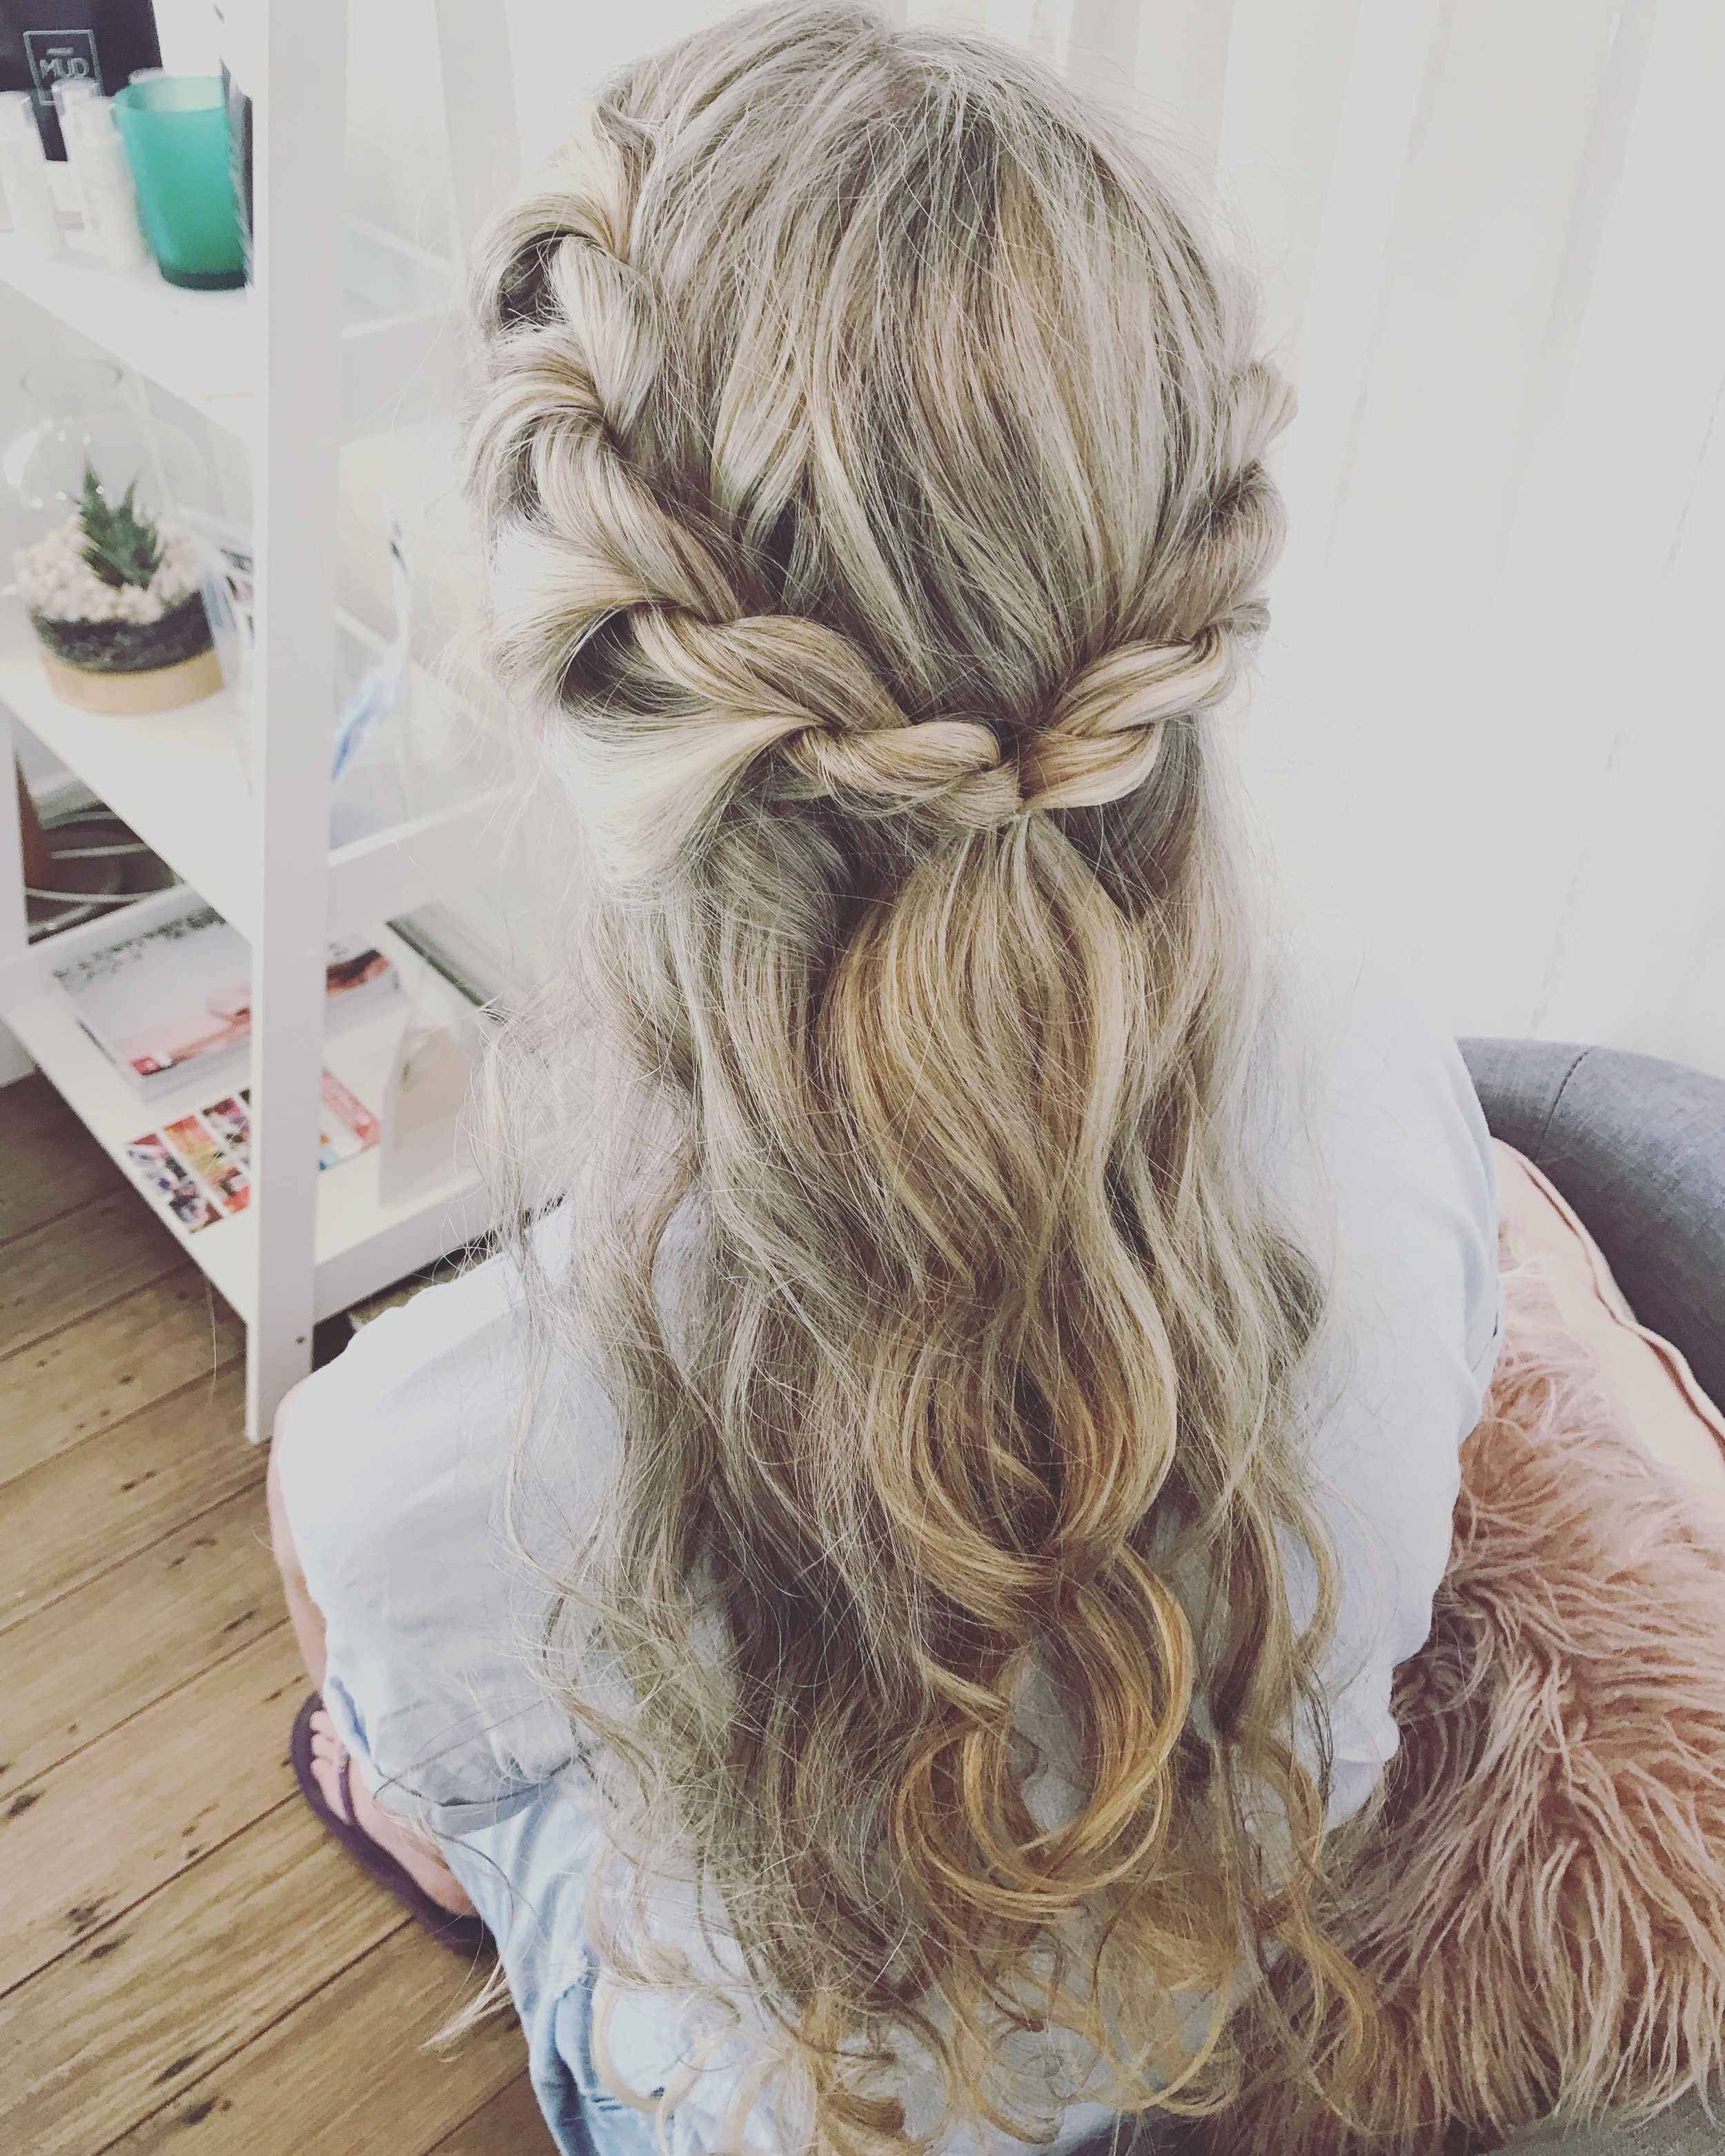 Hair Braiding Salon Australia Kellie Turner 25.JPG